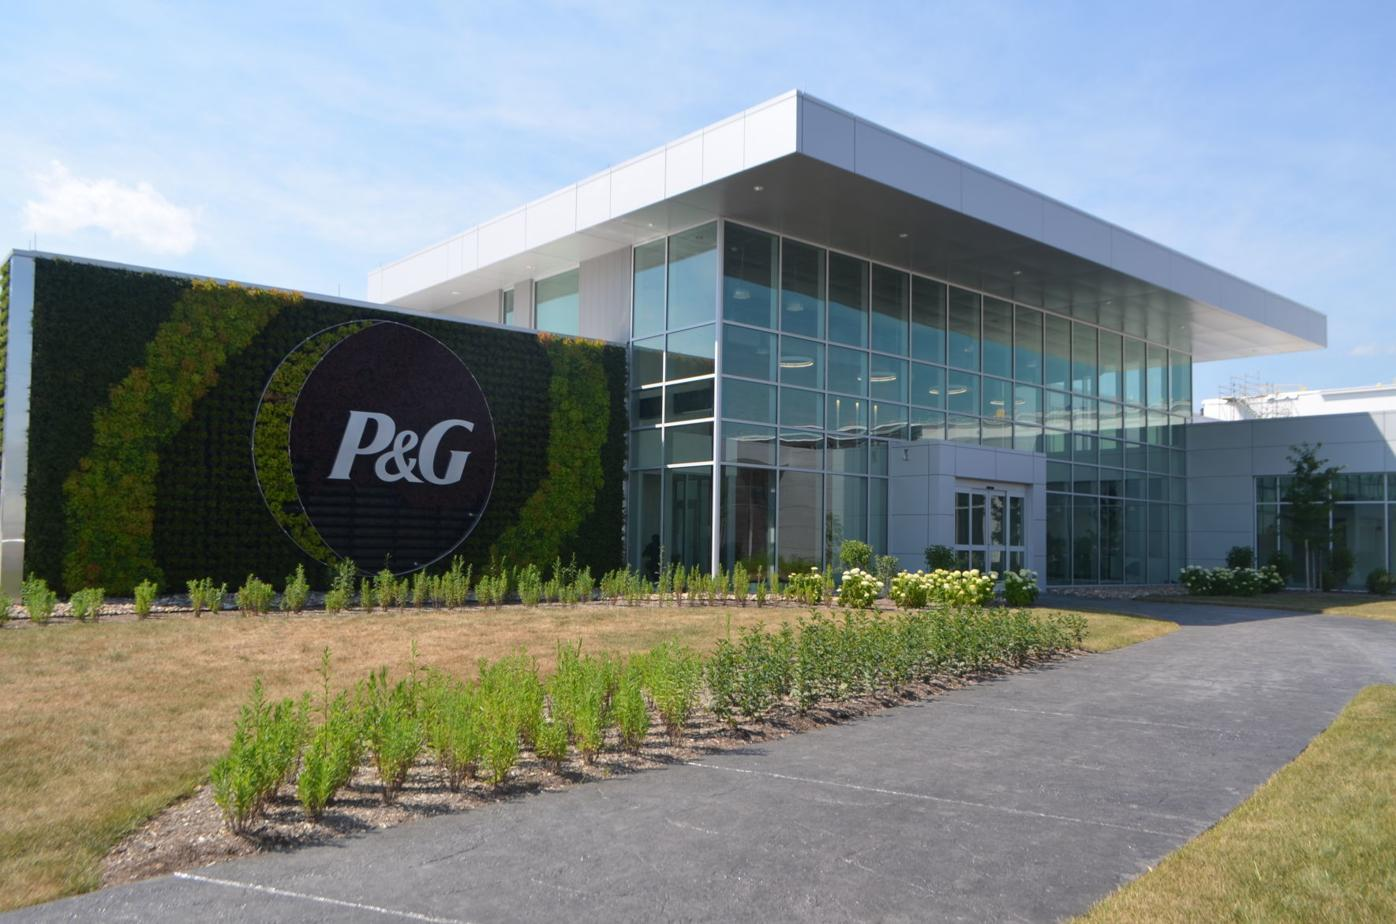 Proctor & Gamble Tabler Station's main building